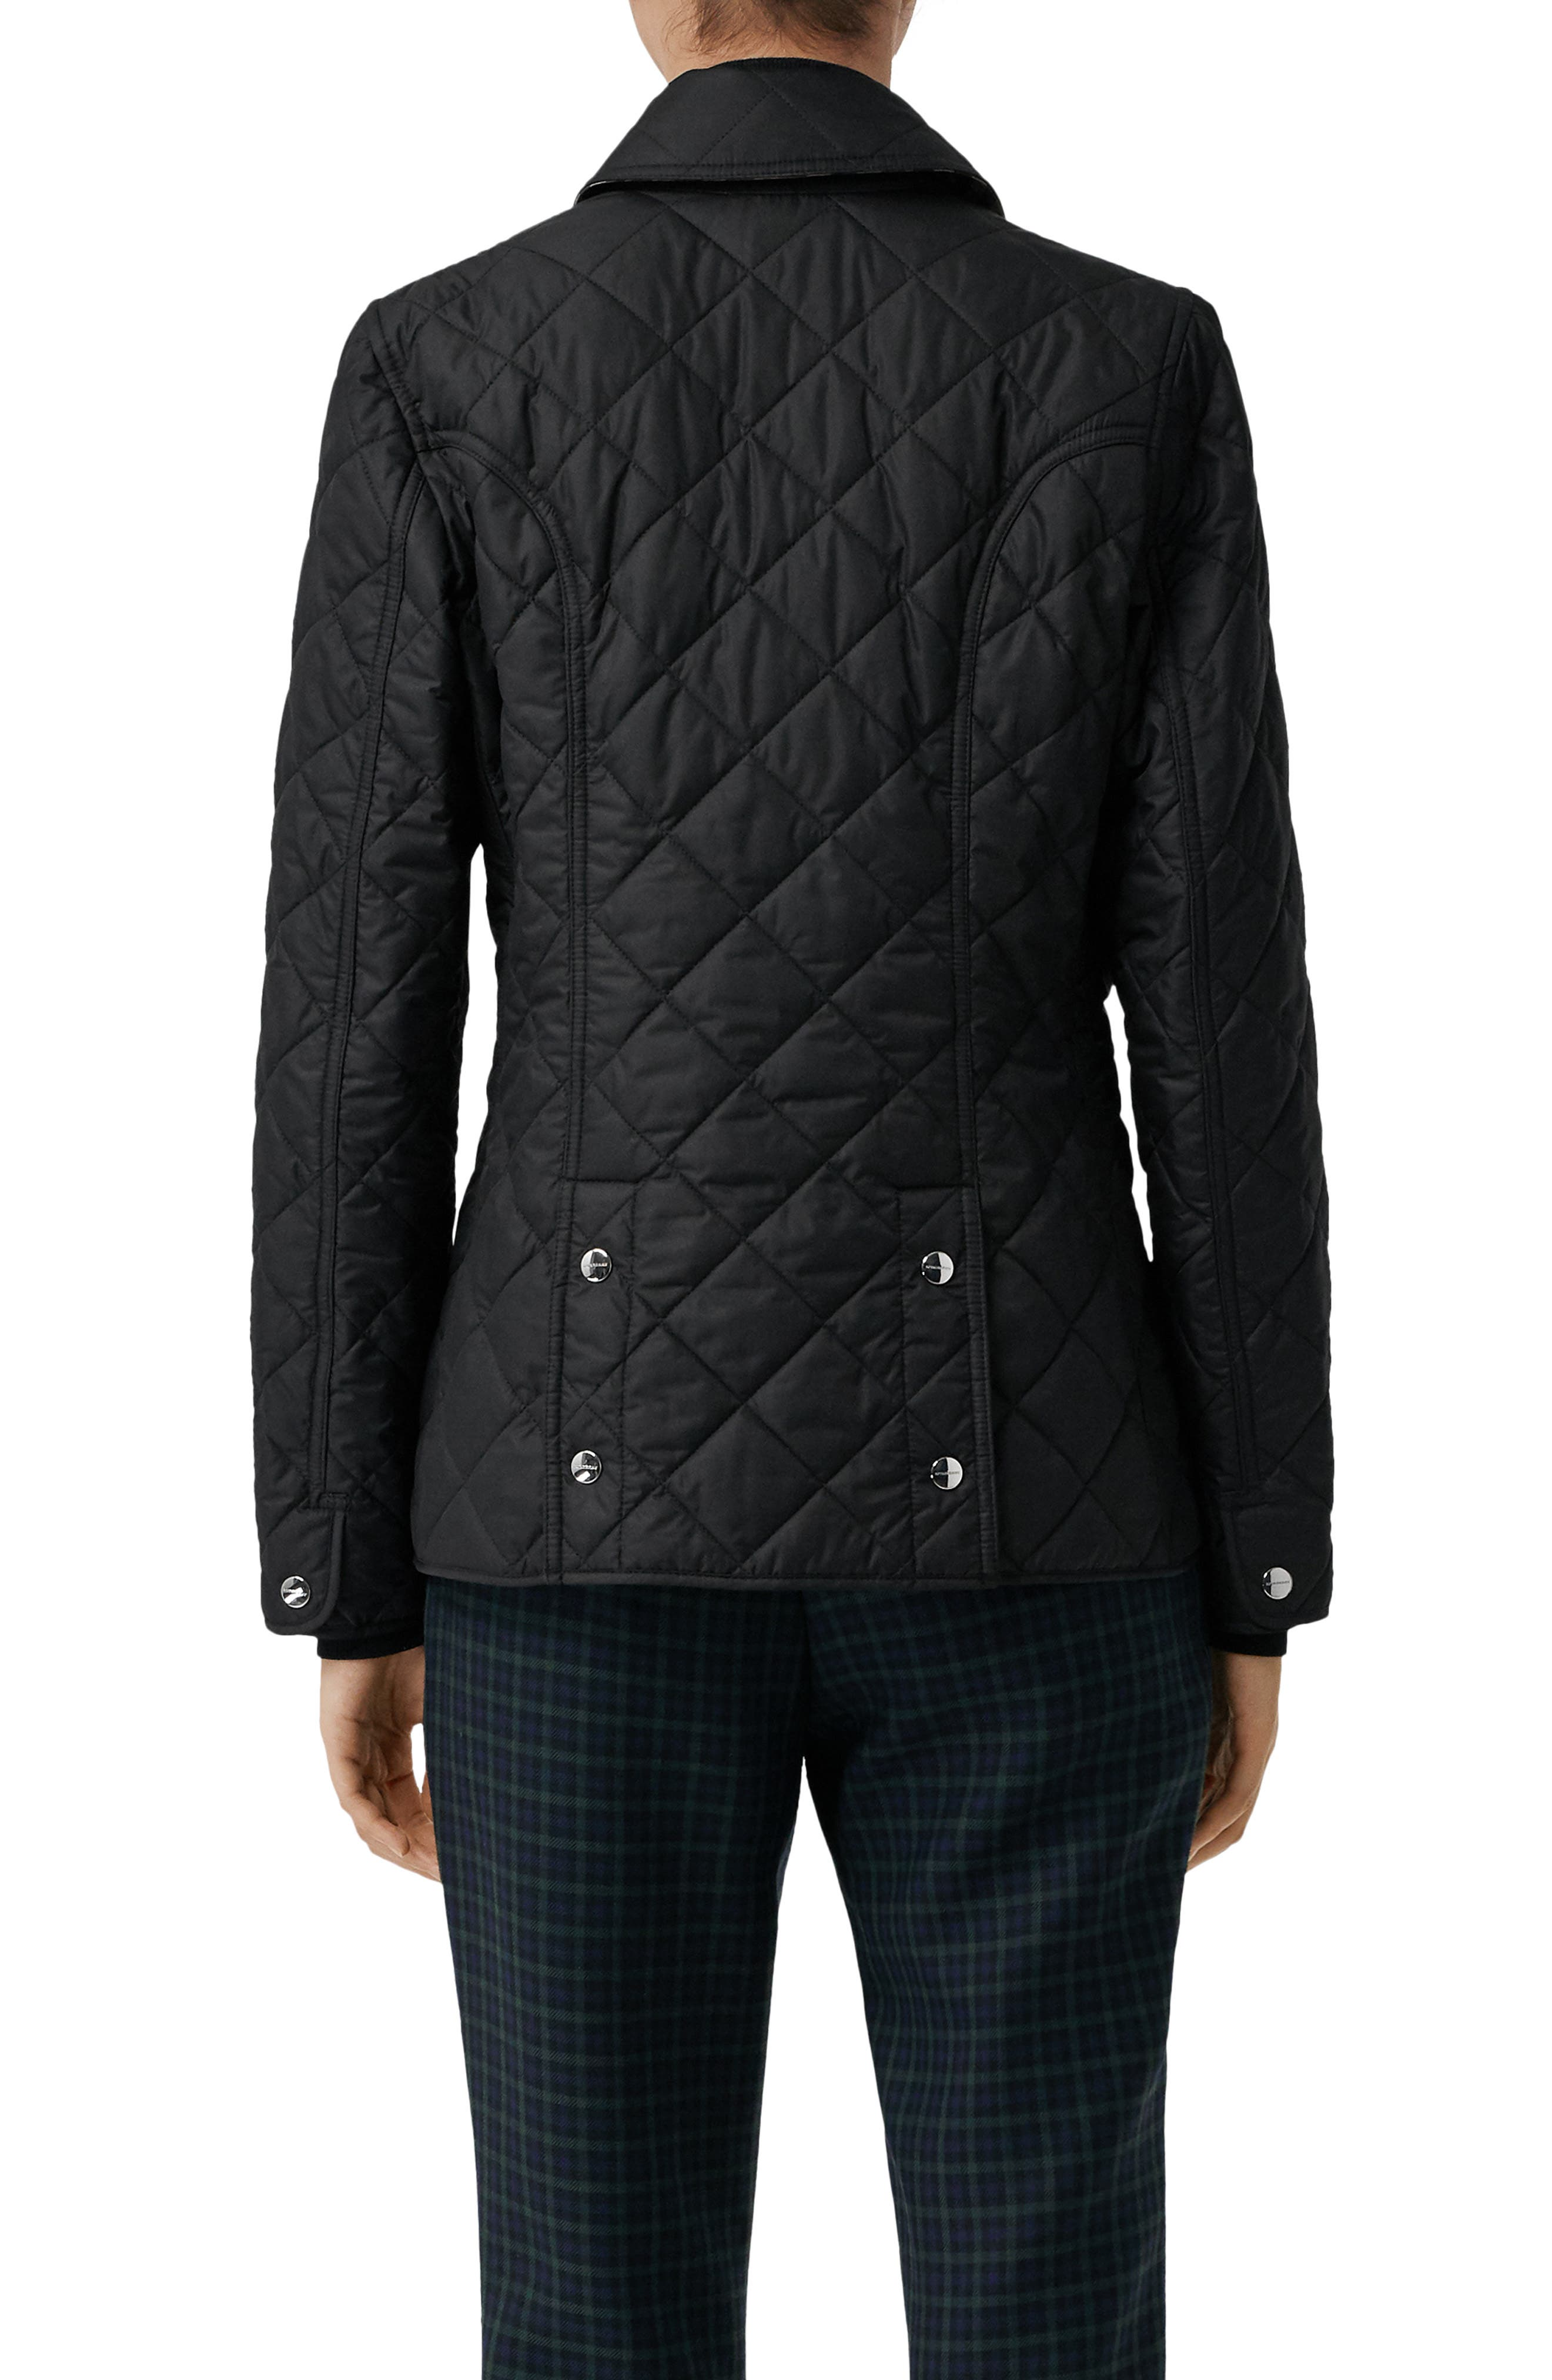 Franwell Diamond Quilted Jacket,                             Alternate thumbnail 2, color,                             BLACK